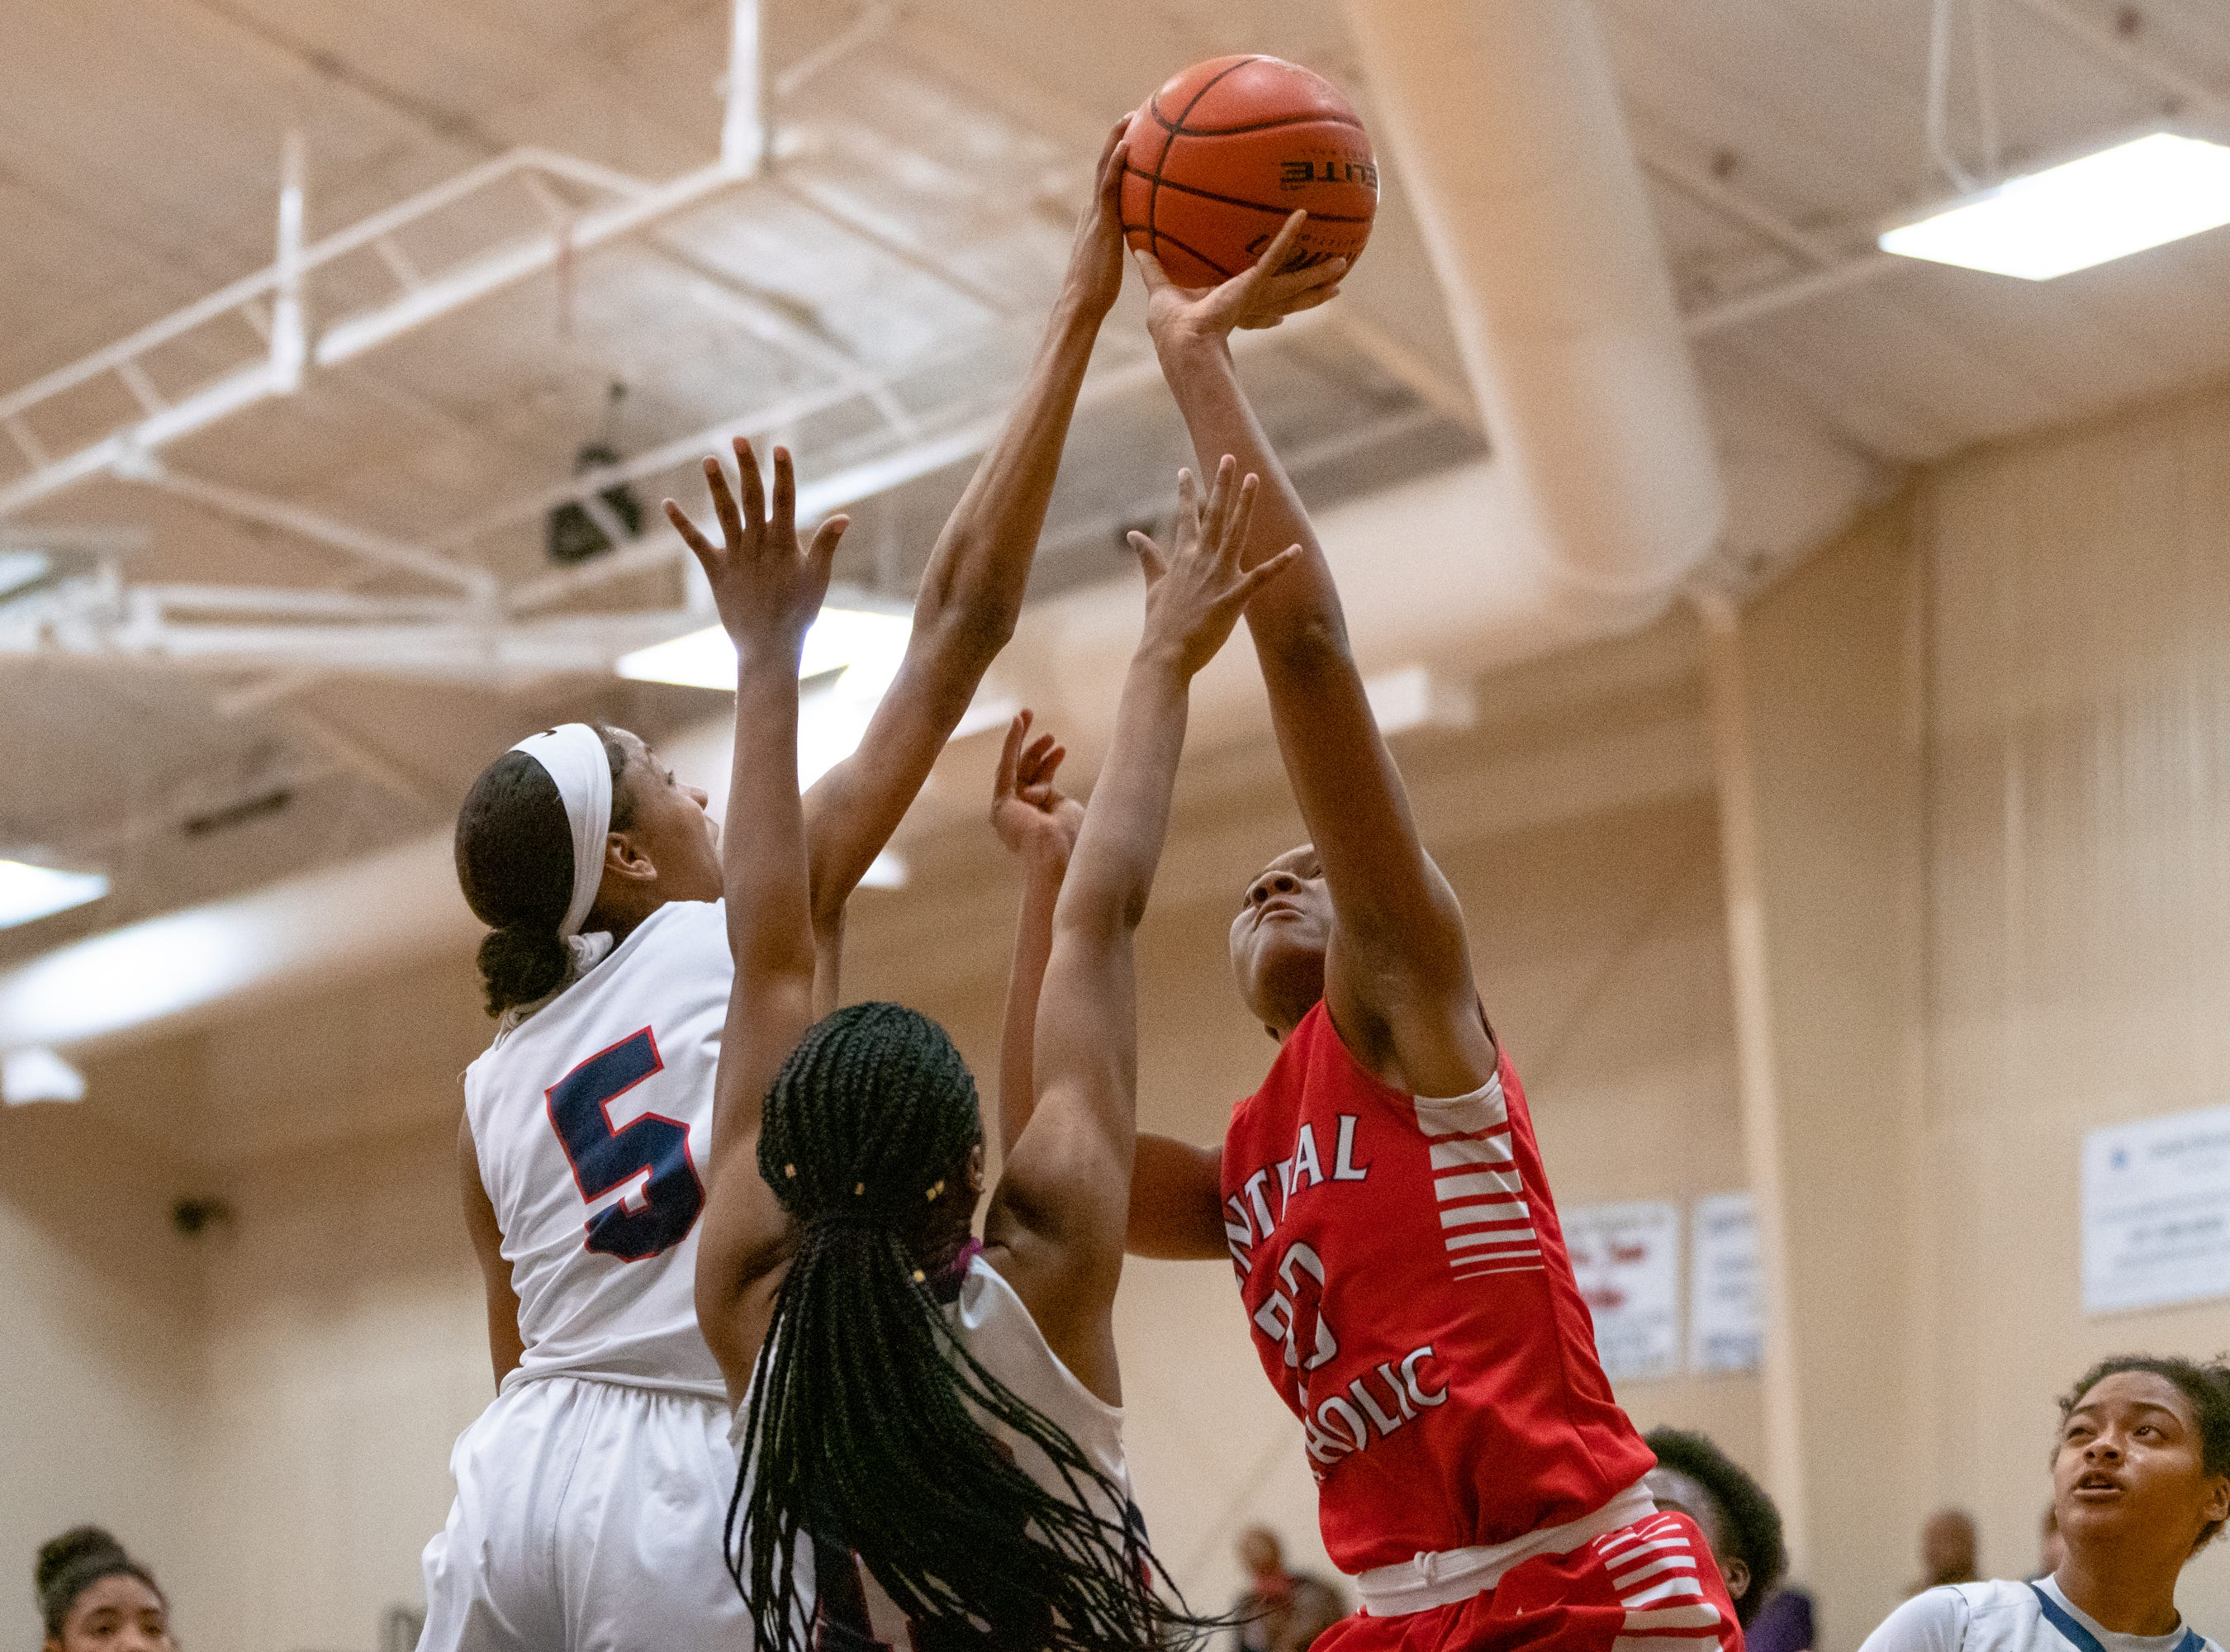 Central Catholic's Yani Johnson gets blocked while taking a shot as the LCA Knights take on the Central Catholic Eagles at home on Thursday, Feb. 21, 2019.